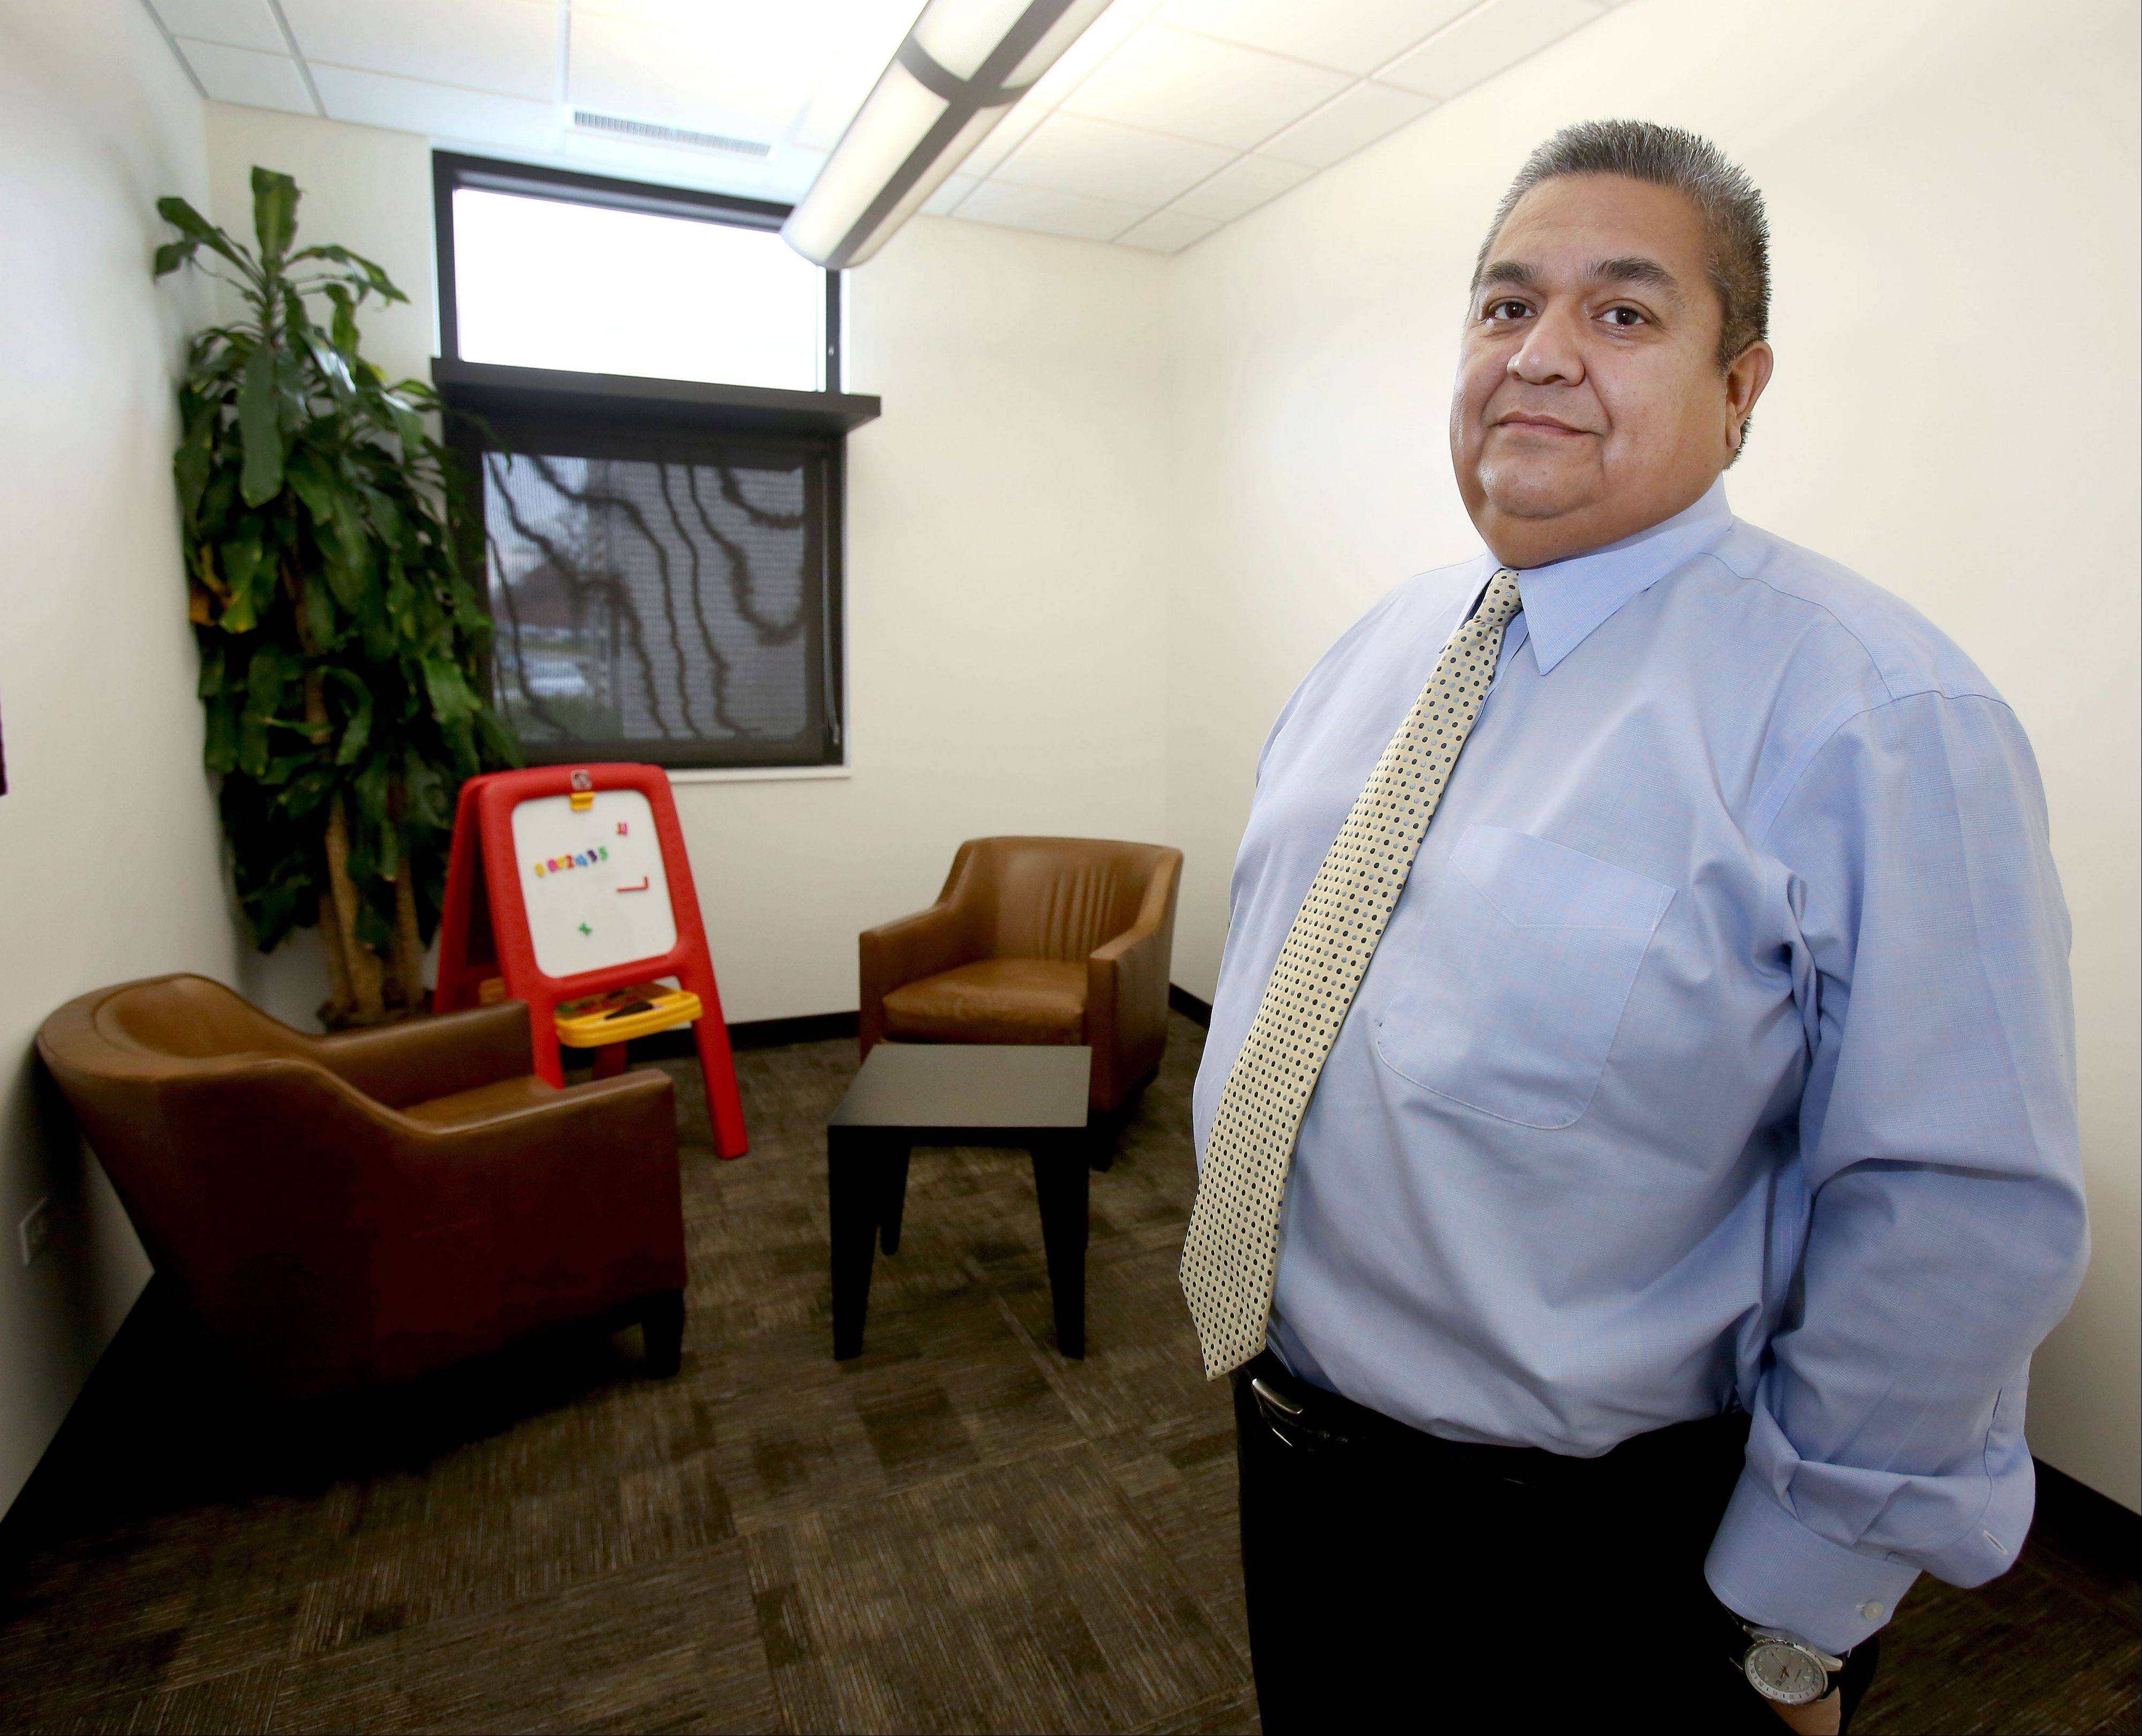 """Children are the most precious thing we have,"" says Robert Holguin, a senior criminal investigator at the Jeanine Nicarico Children's Advocacy Center in Wheaton."